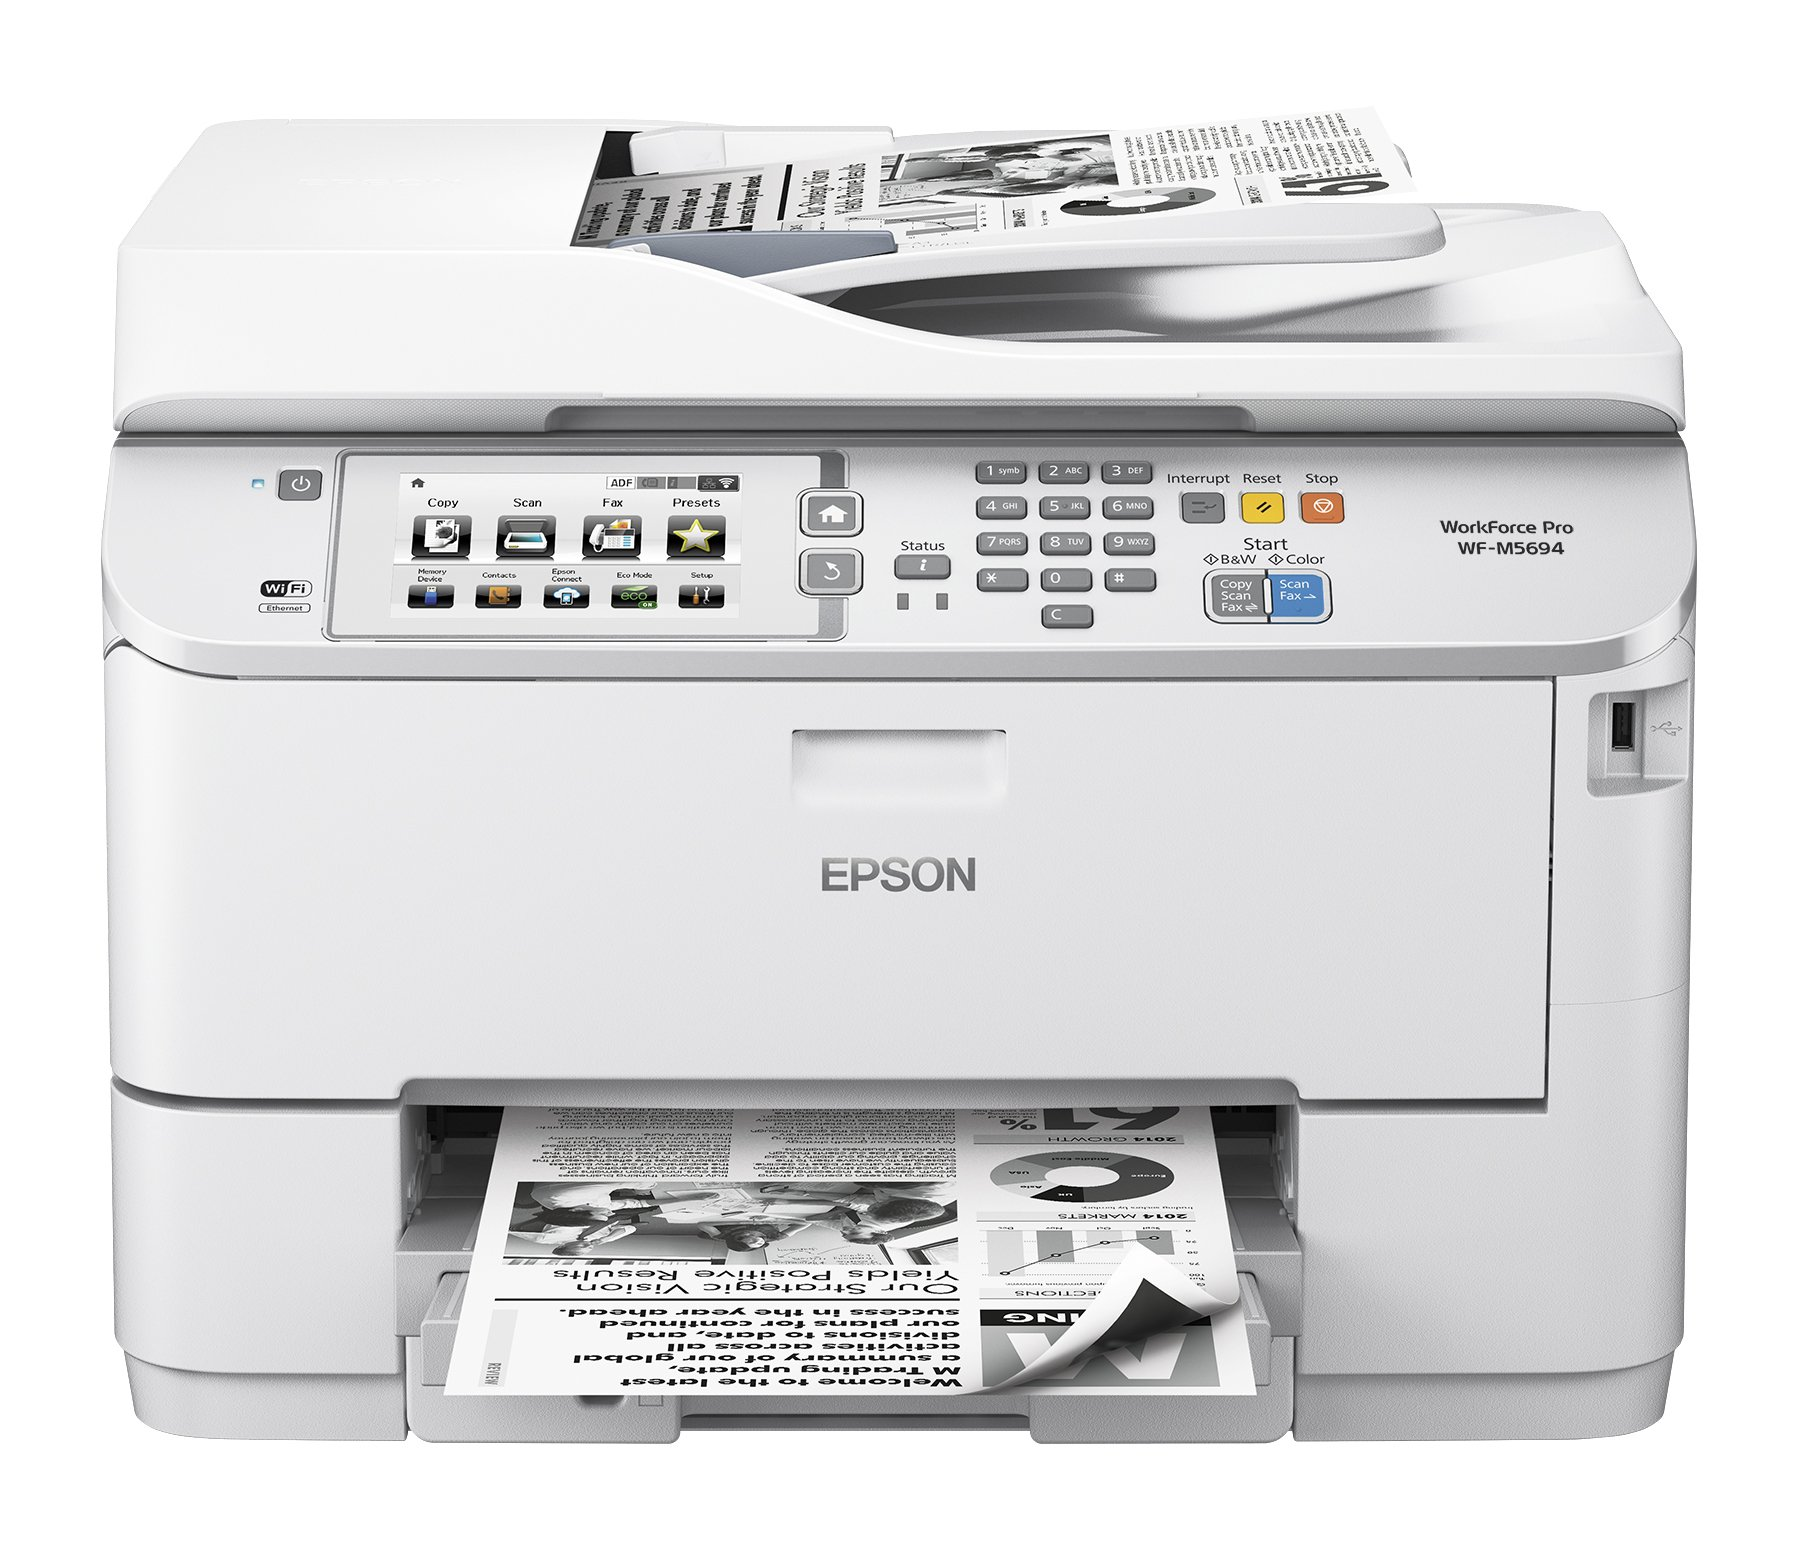 Epson WorkForce Pro M5694 Review: Fast, Quality Printing | The